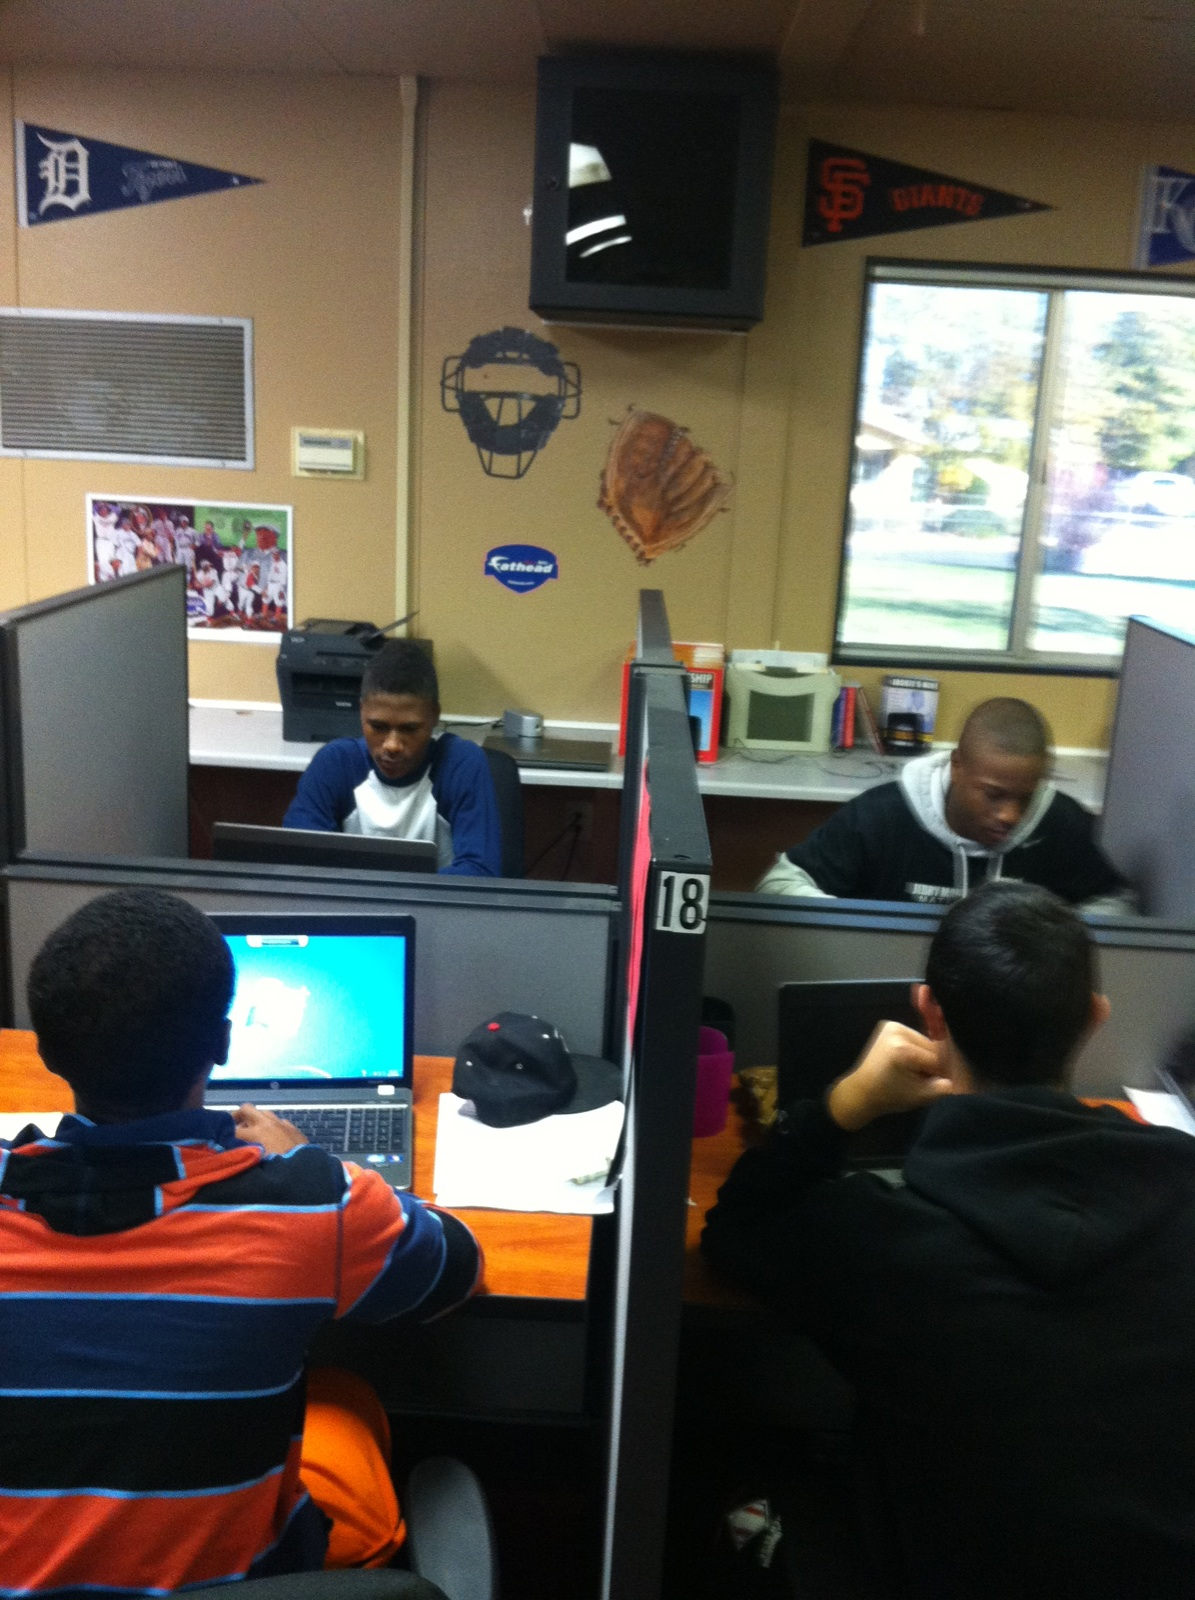 The Classroom Stations